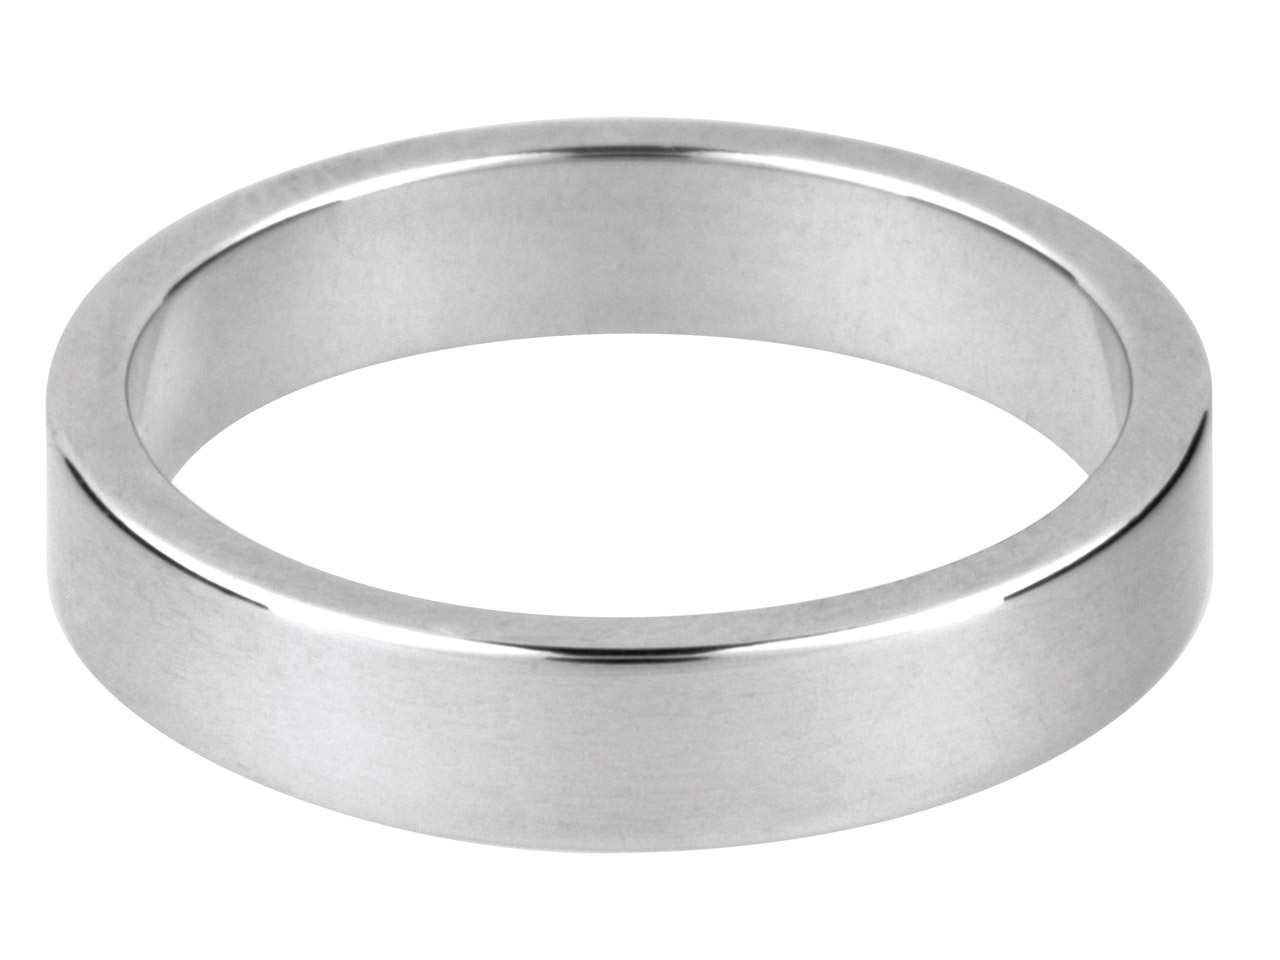 Silver Flat Wedding Ring 8.0mm Z    8.7gms Heavy Weight Hallmarked Wall Thickness 1.40mm